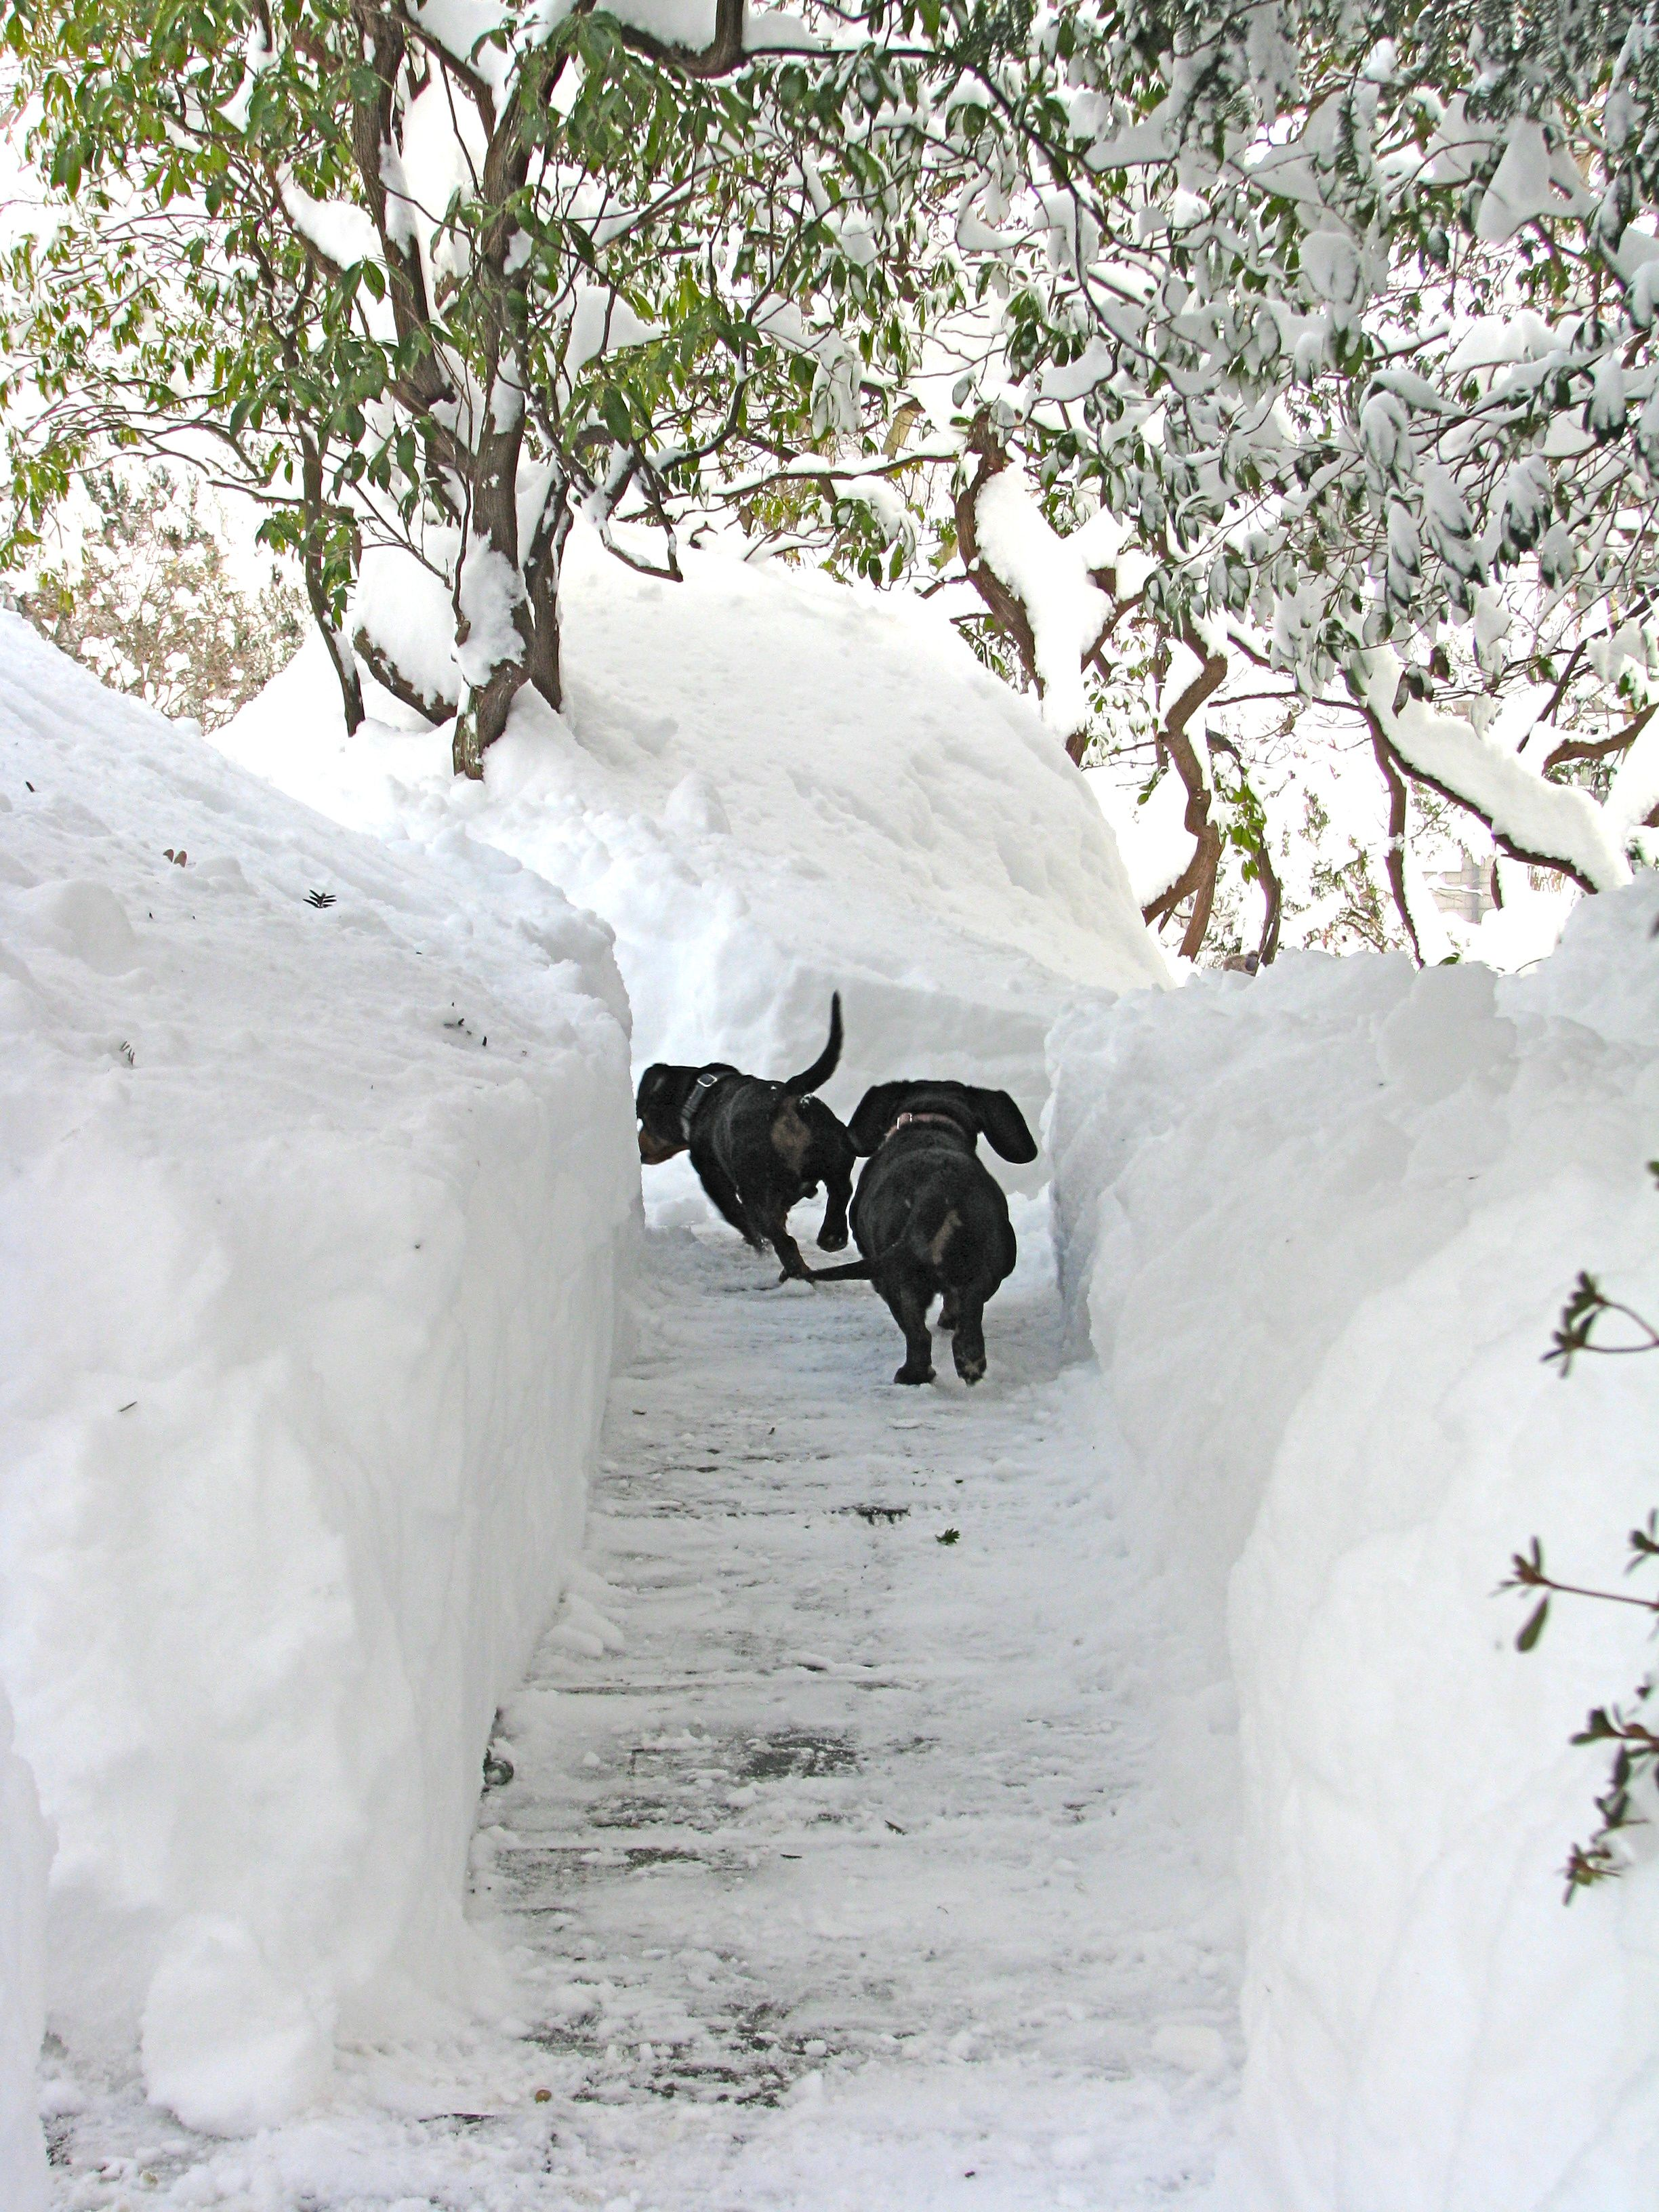 doxies playing in a path of snow note this would not be my dogs